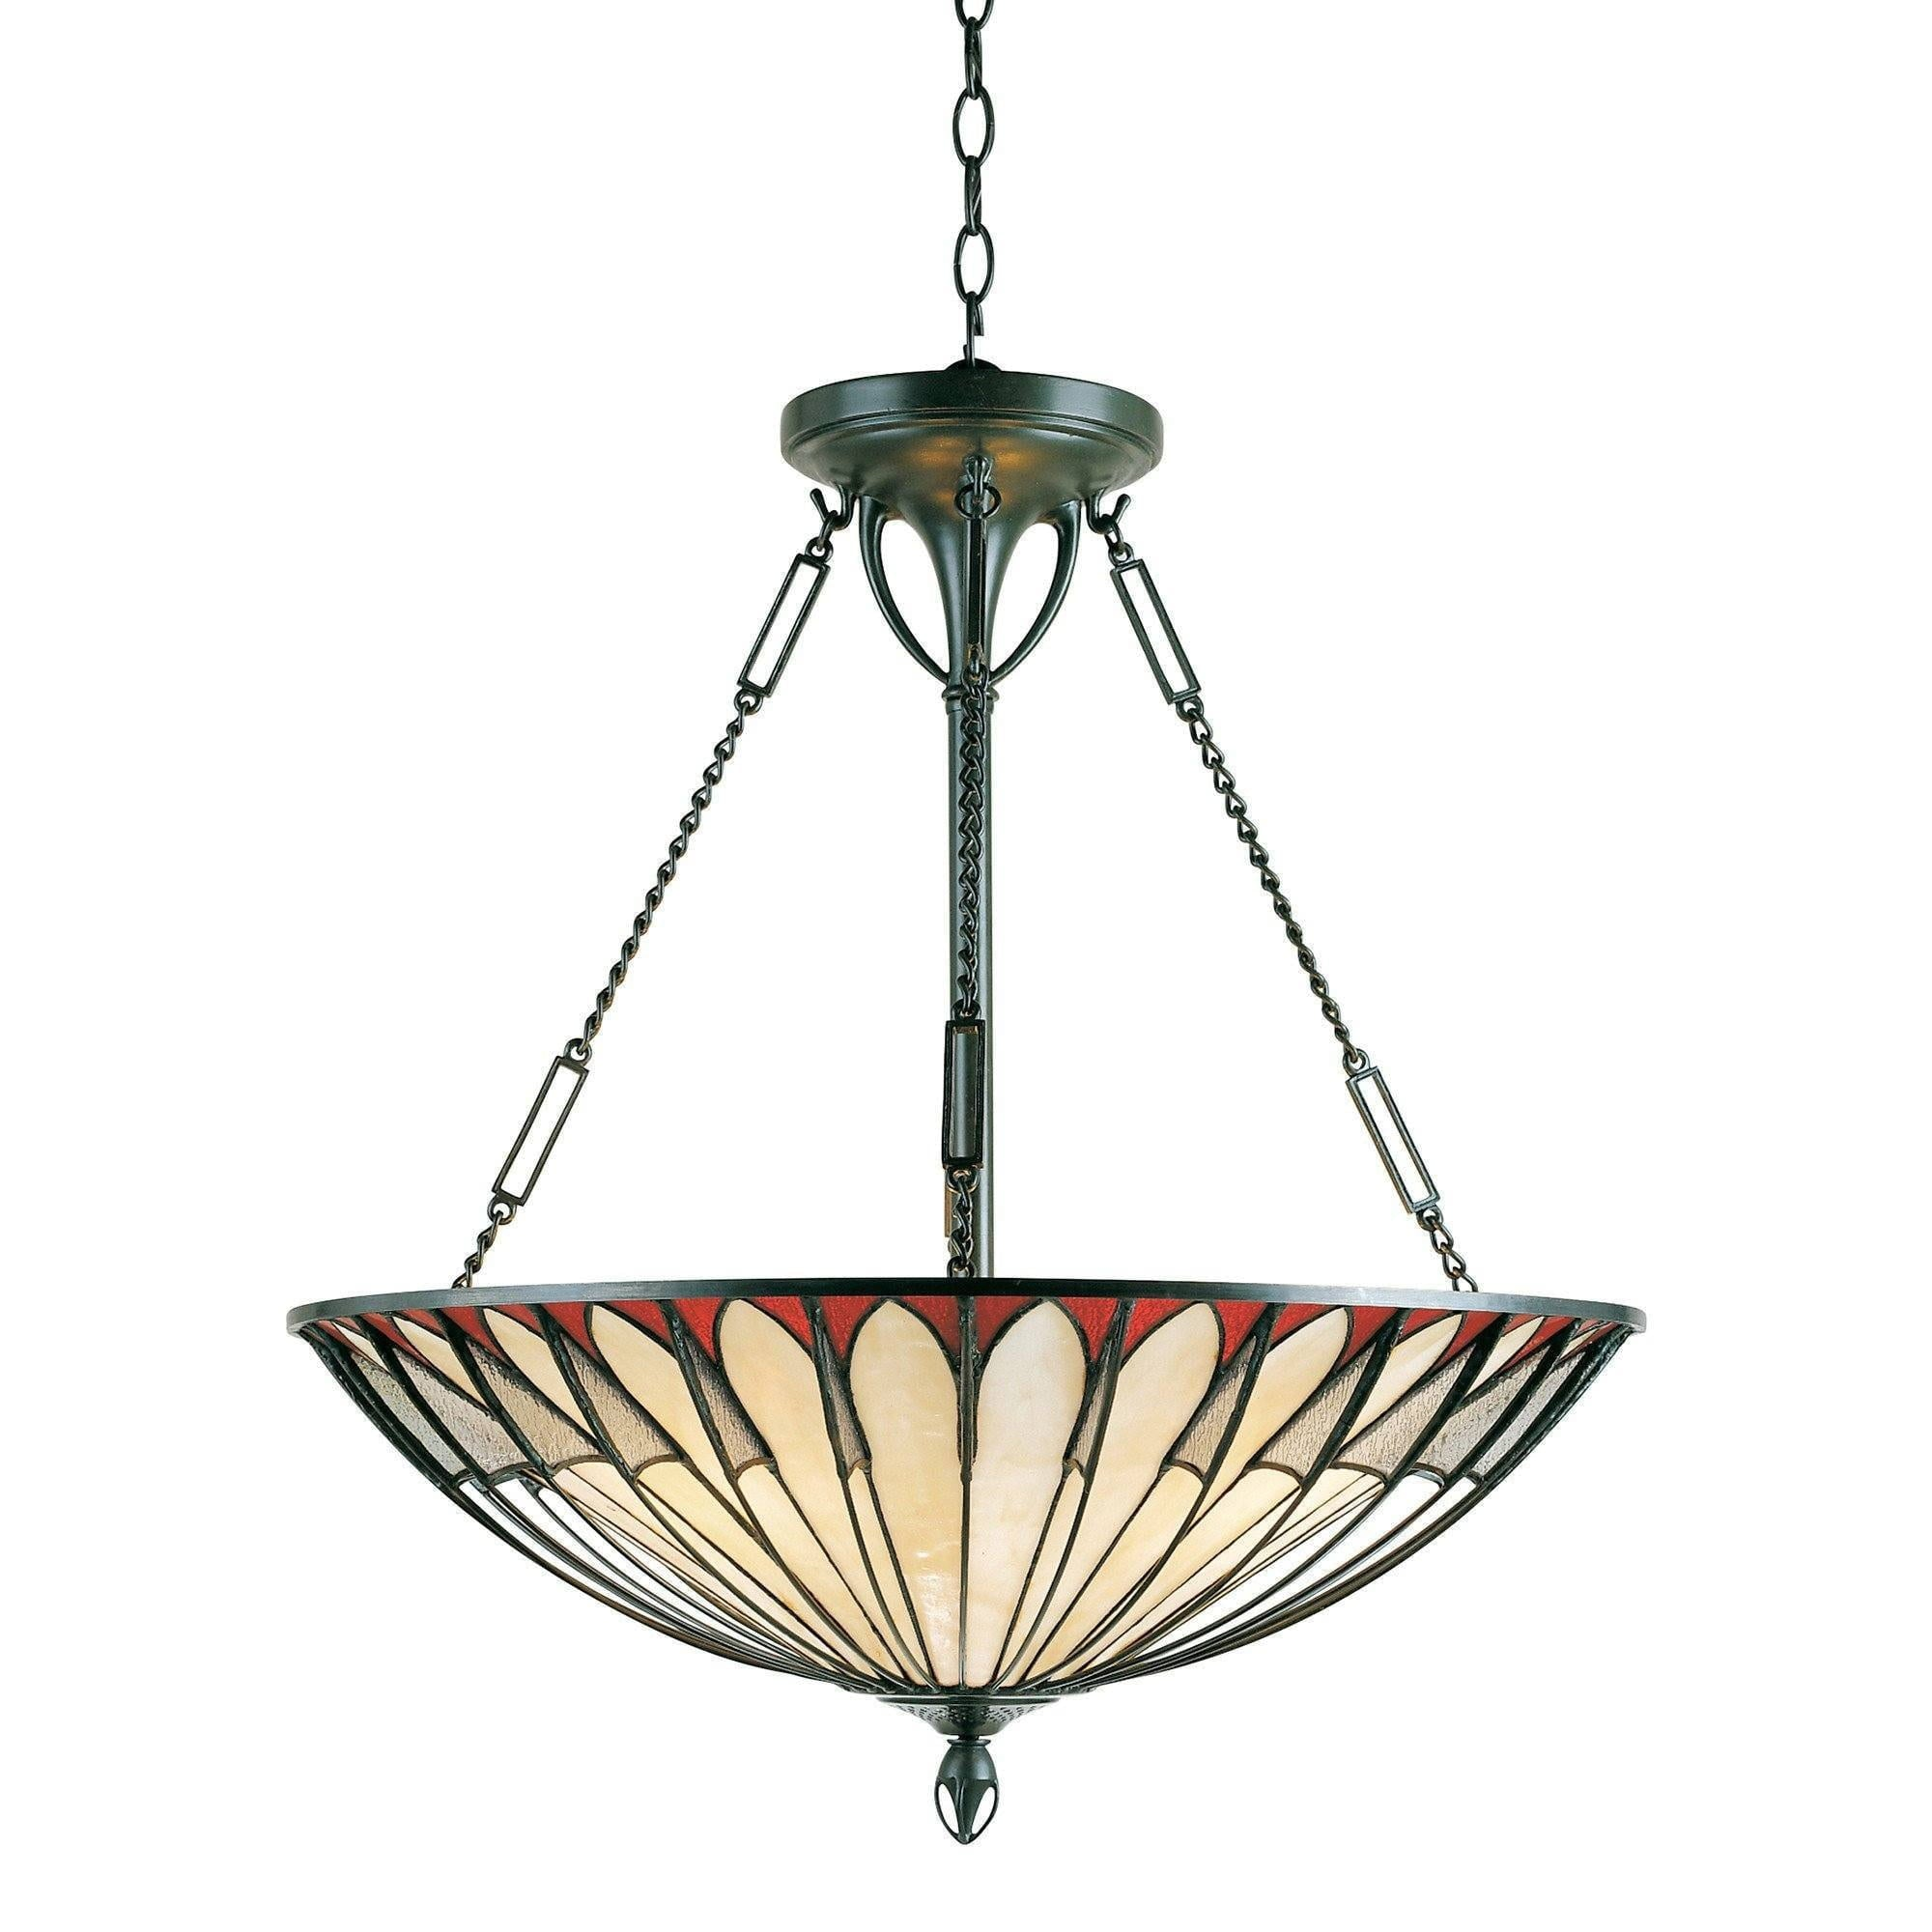 Alahambre inverted tiffany ceiling light tiffany inverted ceiling pendant lights quoizel tiffany alahambre inverted pendant light qzalahambre aloadofball Gallery